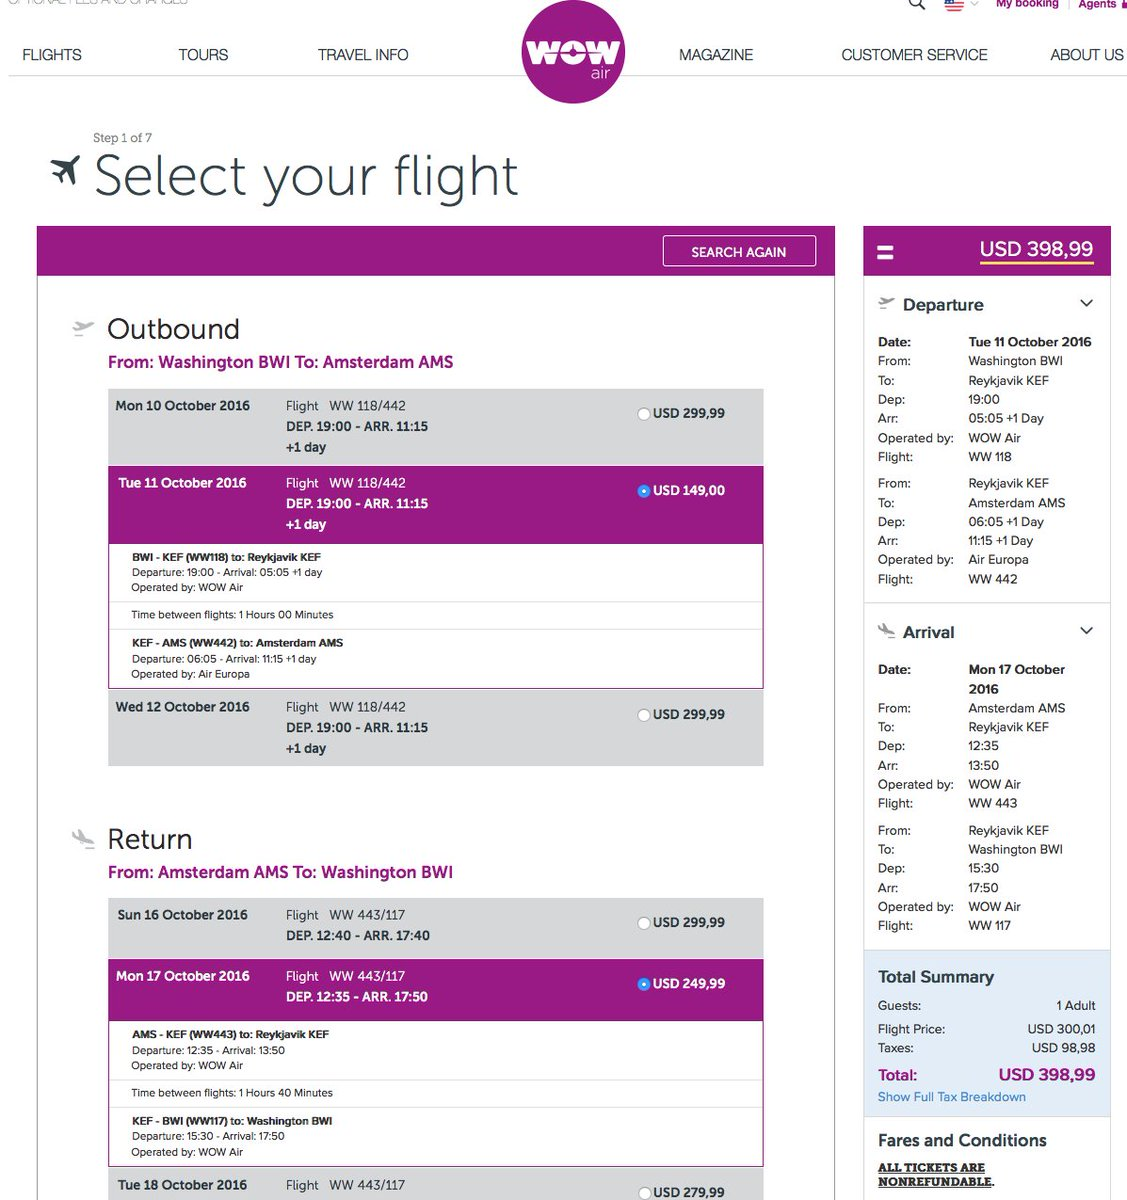 RT @airfarewatchdog: BWI-Amsterdam $399 RT on @wow_air airfare deal